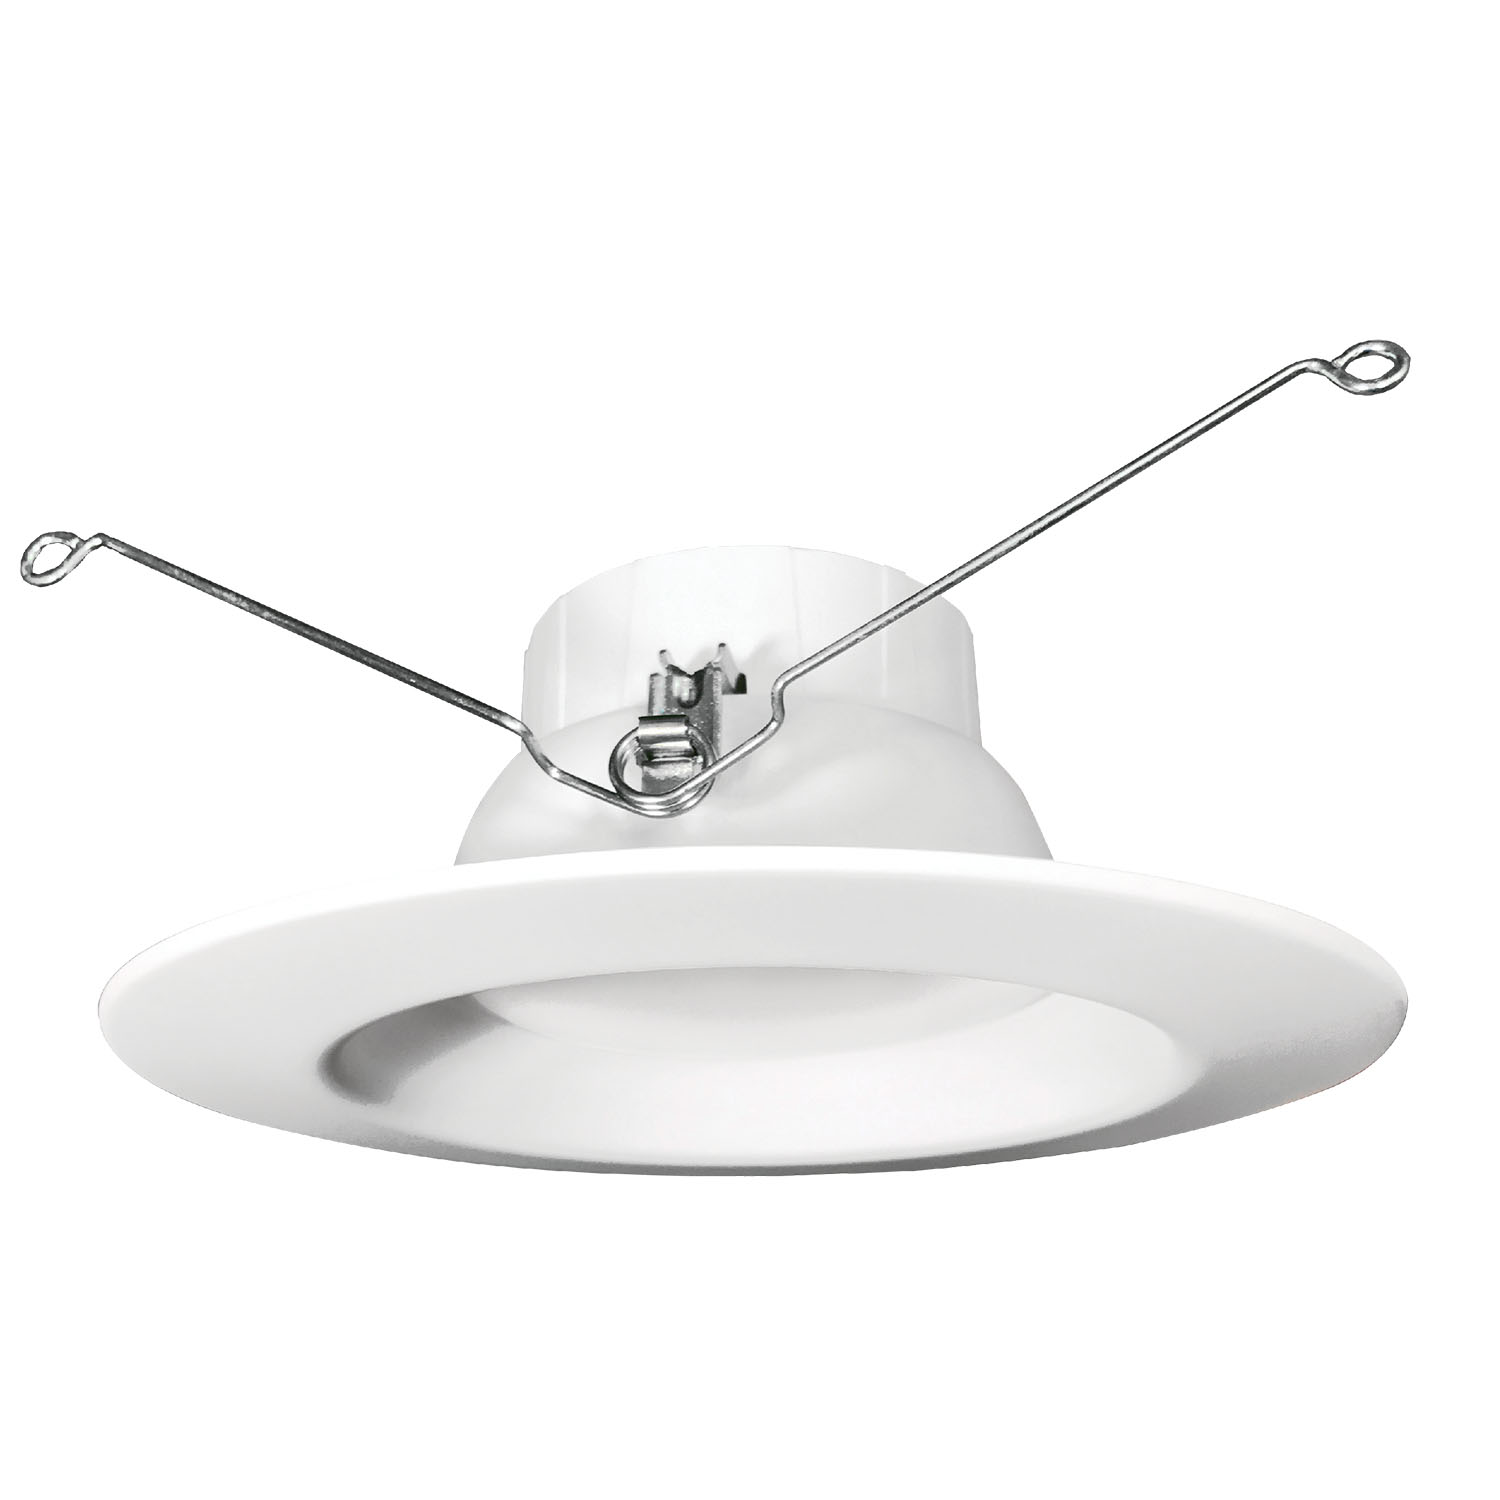 "DL6FR15/927/ECO/LED2 99645 6"" Retrofit Downlight, 15W, 2700K, Dimmable ProLED ECO Series II"